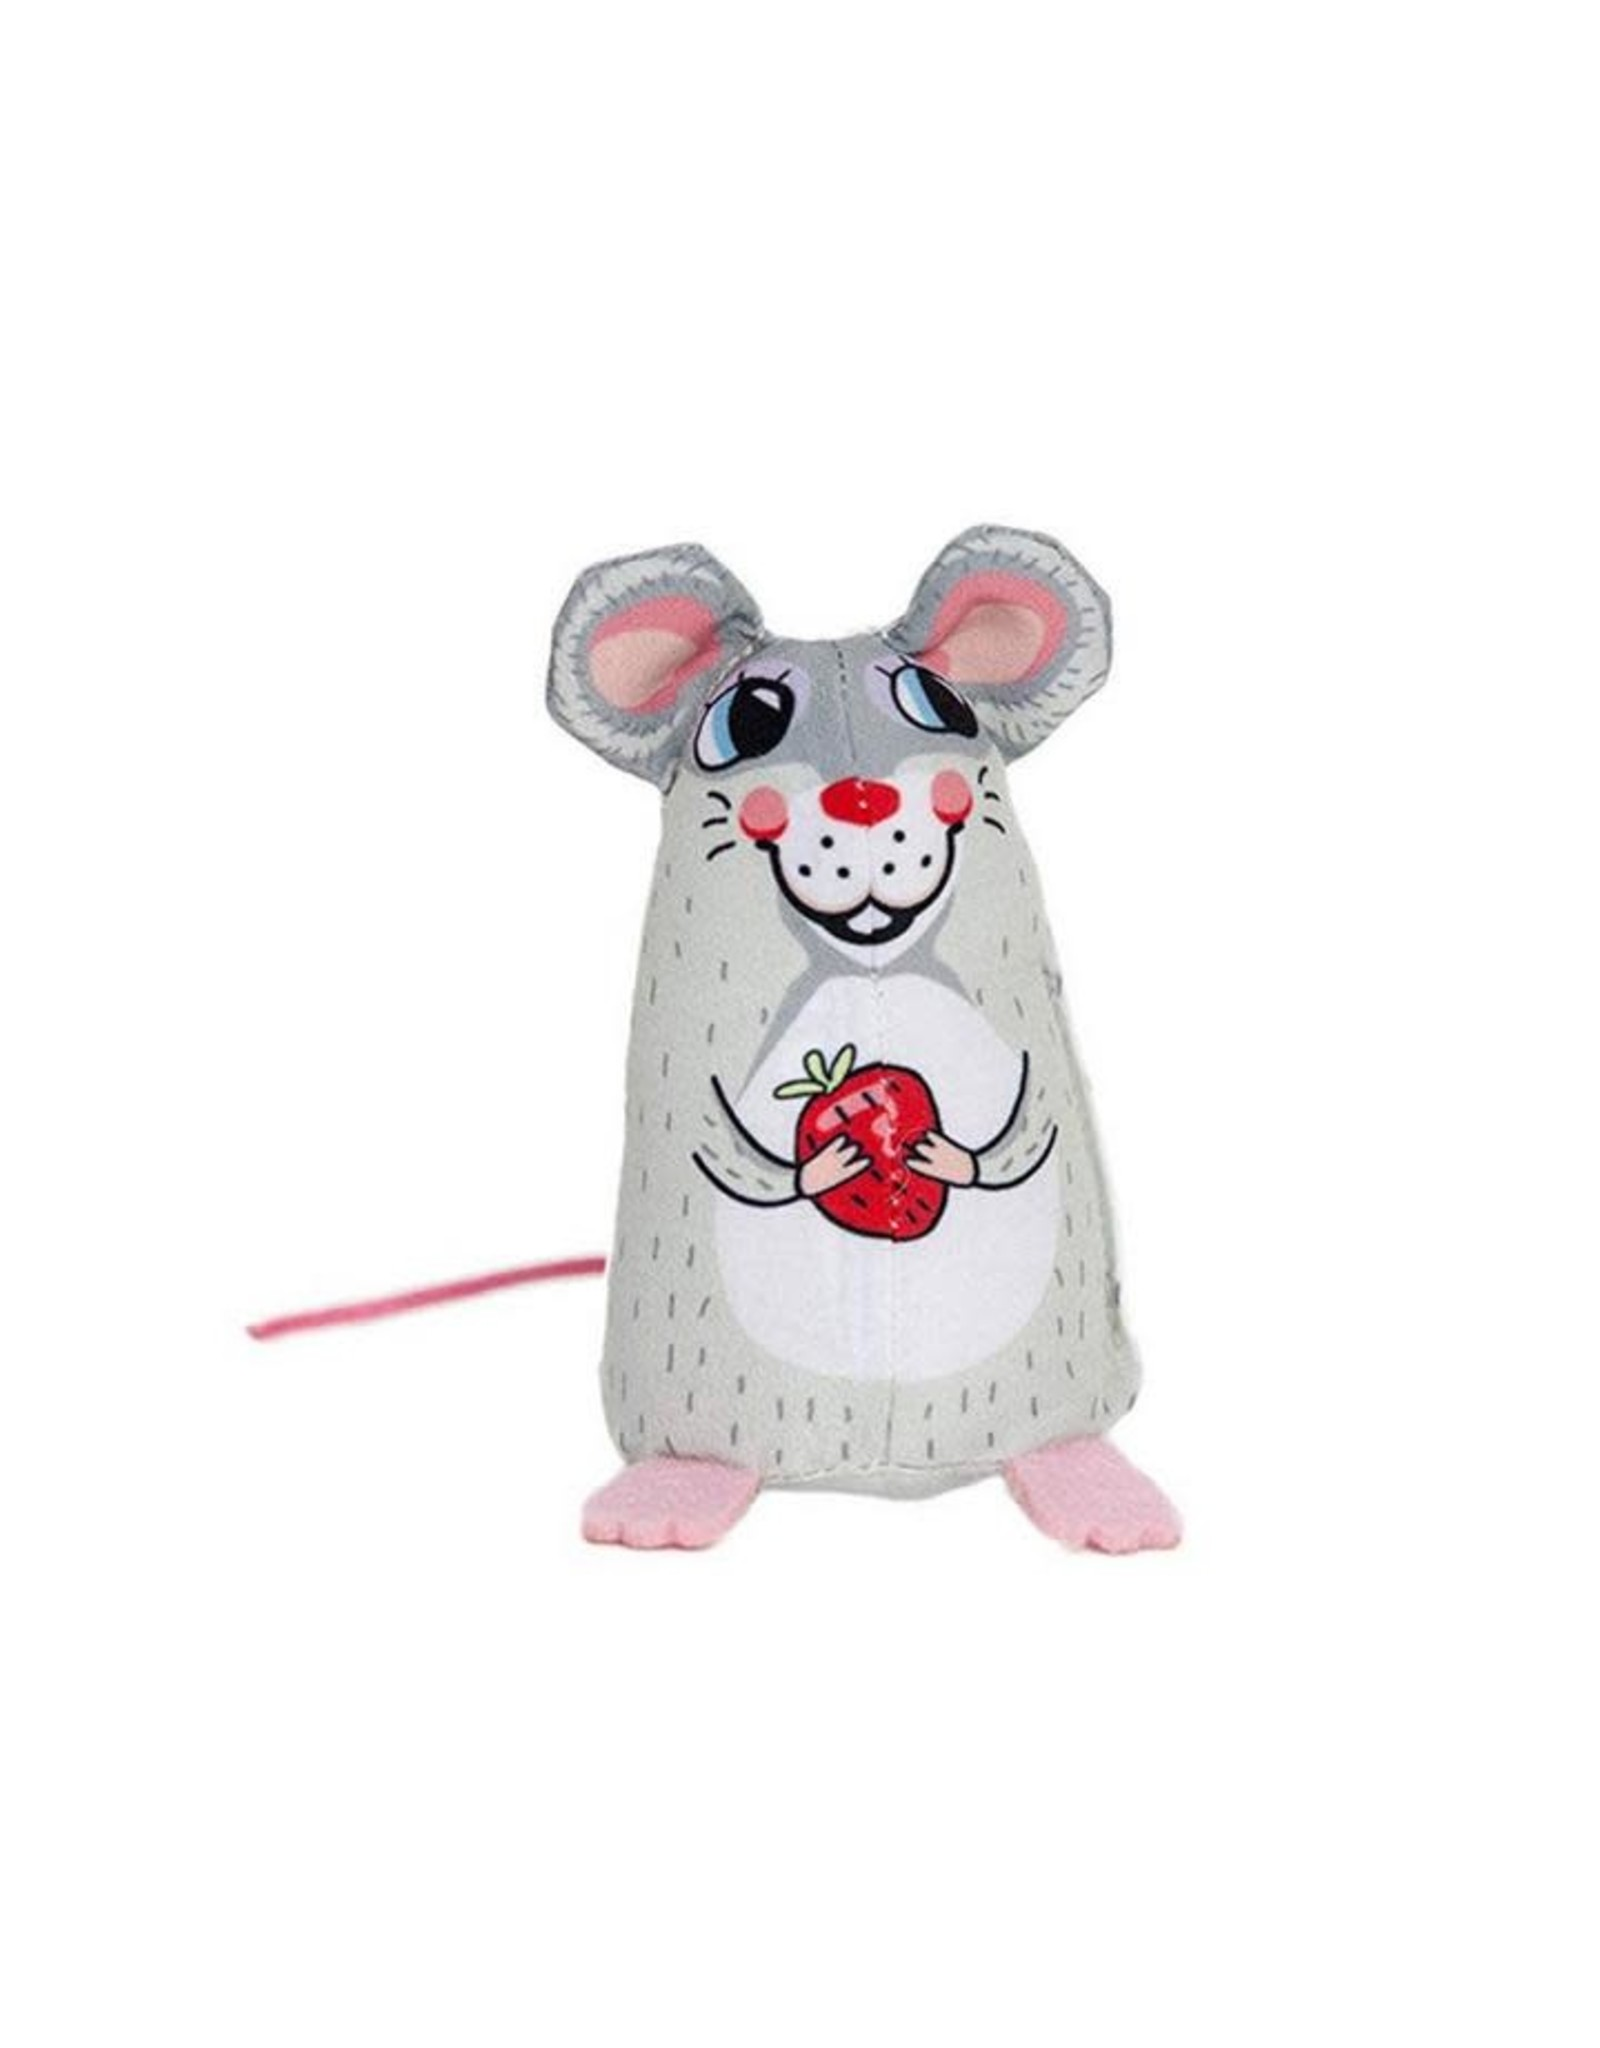 FUZZU FUZZU - Cat Toy - SweetBabyMice Sweetie Mouse